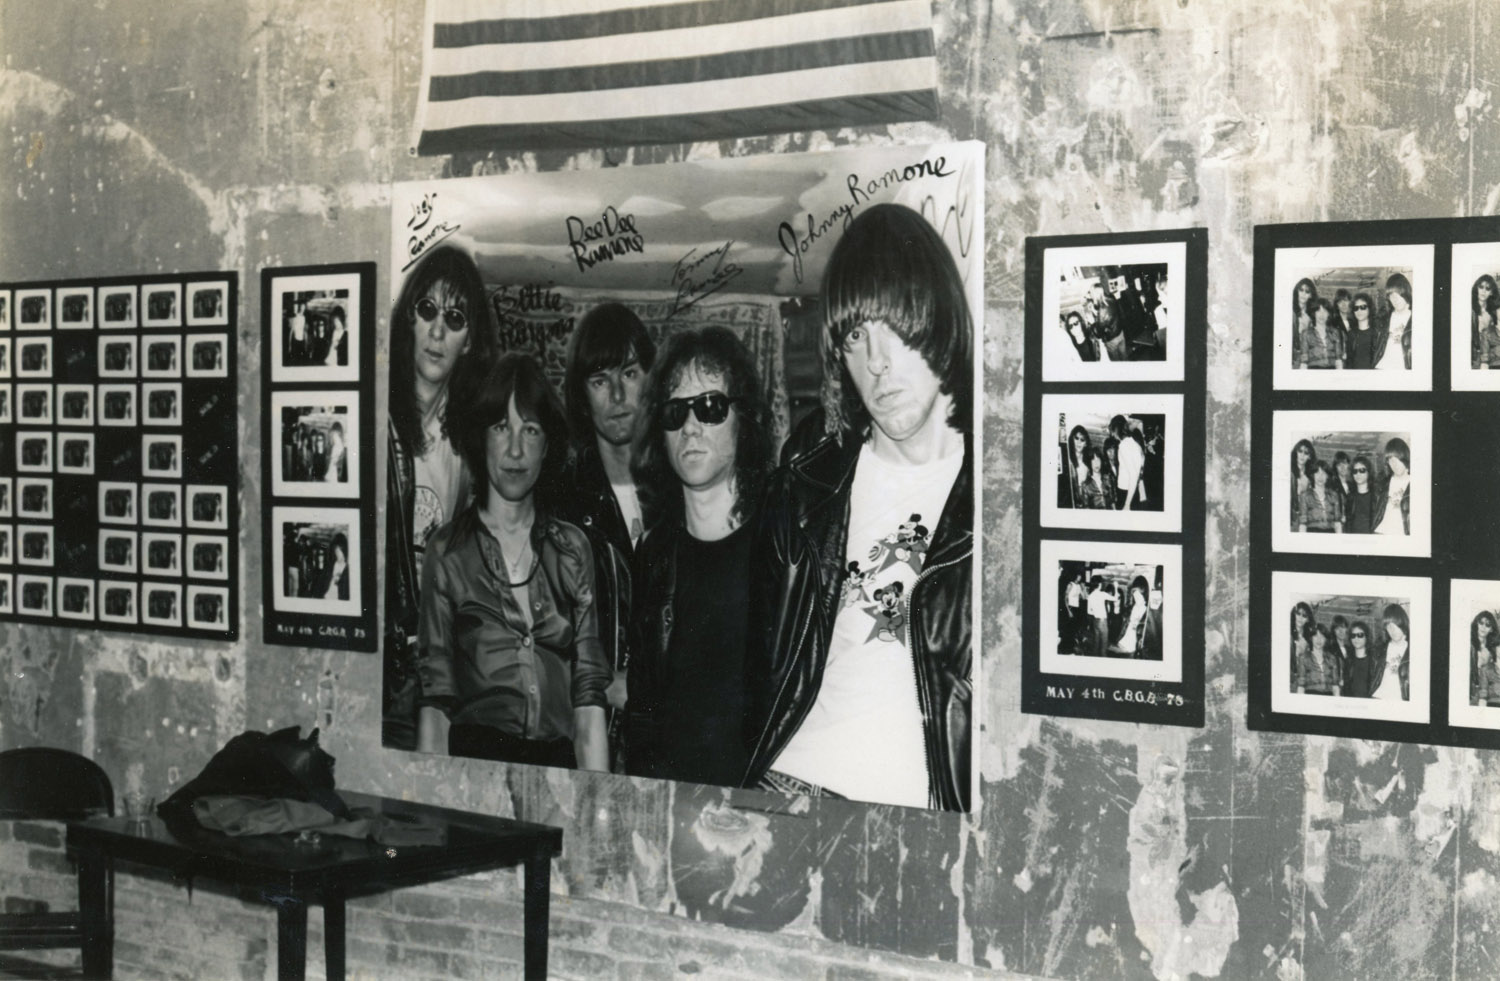 'Bettie and the Ramones' at the Punk Art Exhibition, Washington Project for the Arts, 1978